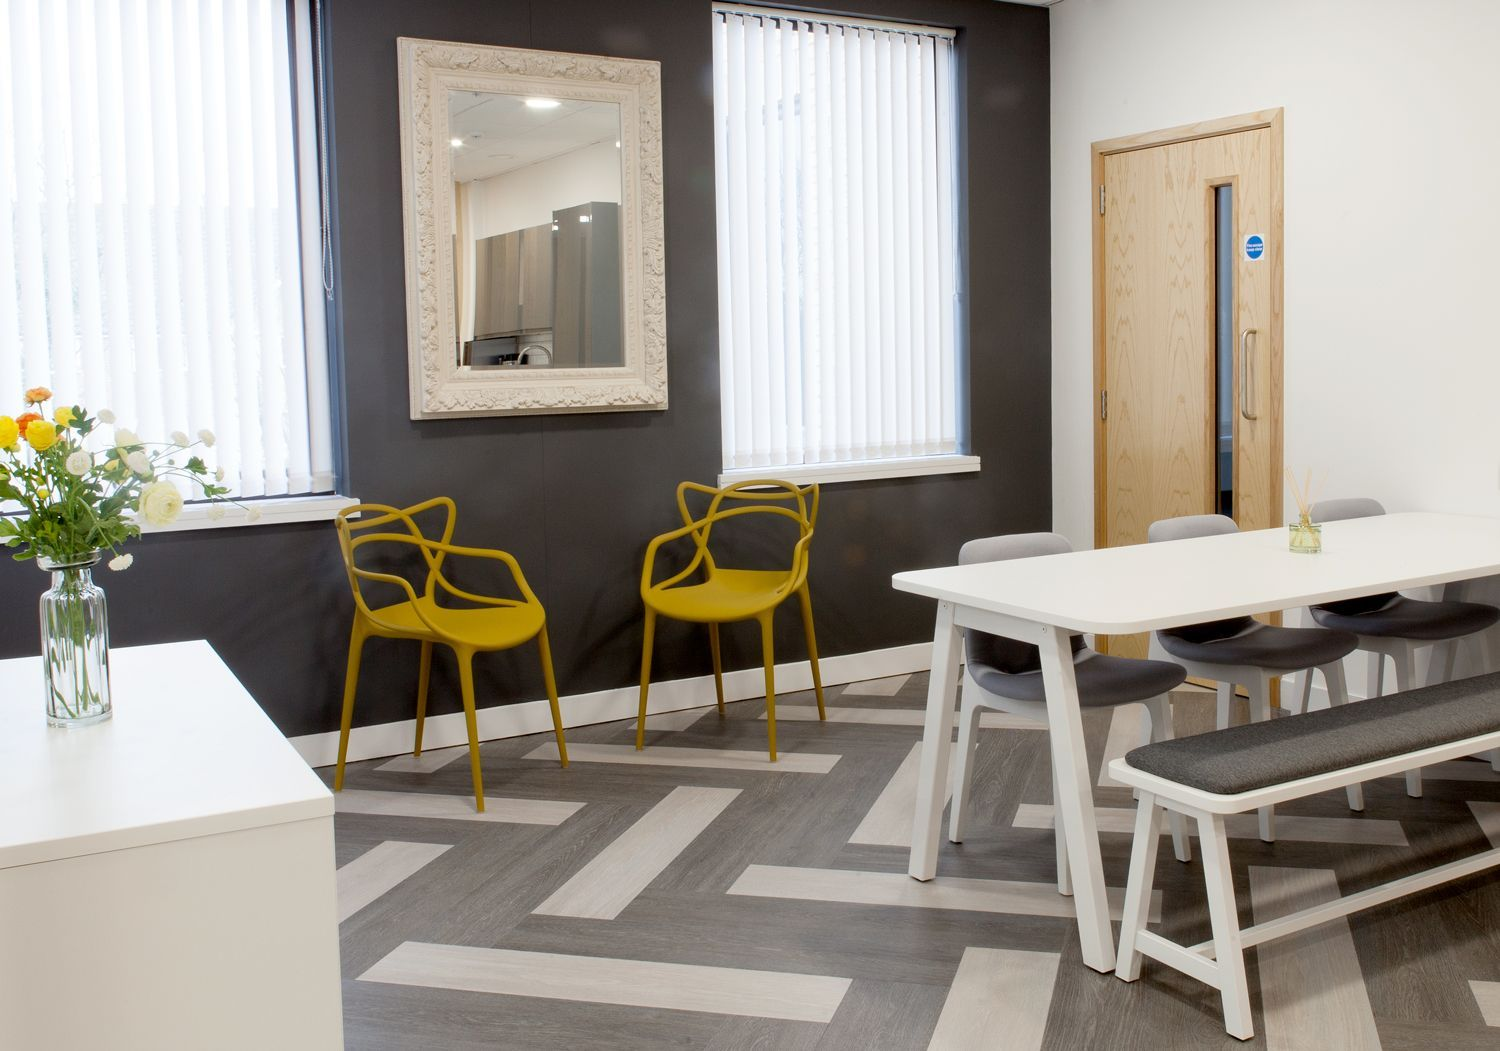 Why pattern is important in office design London?